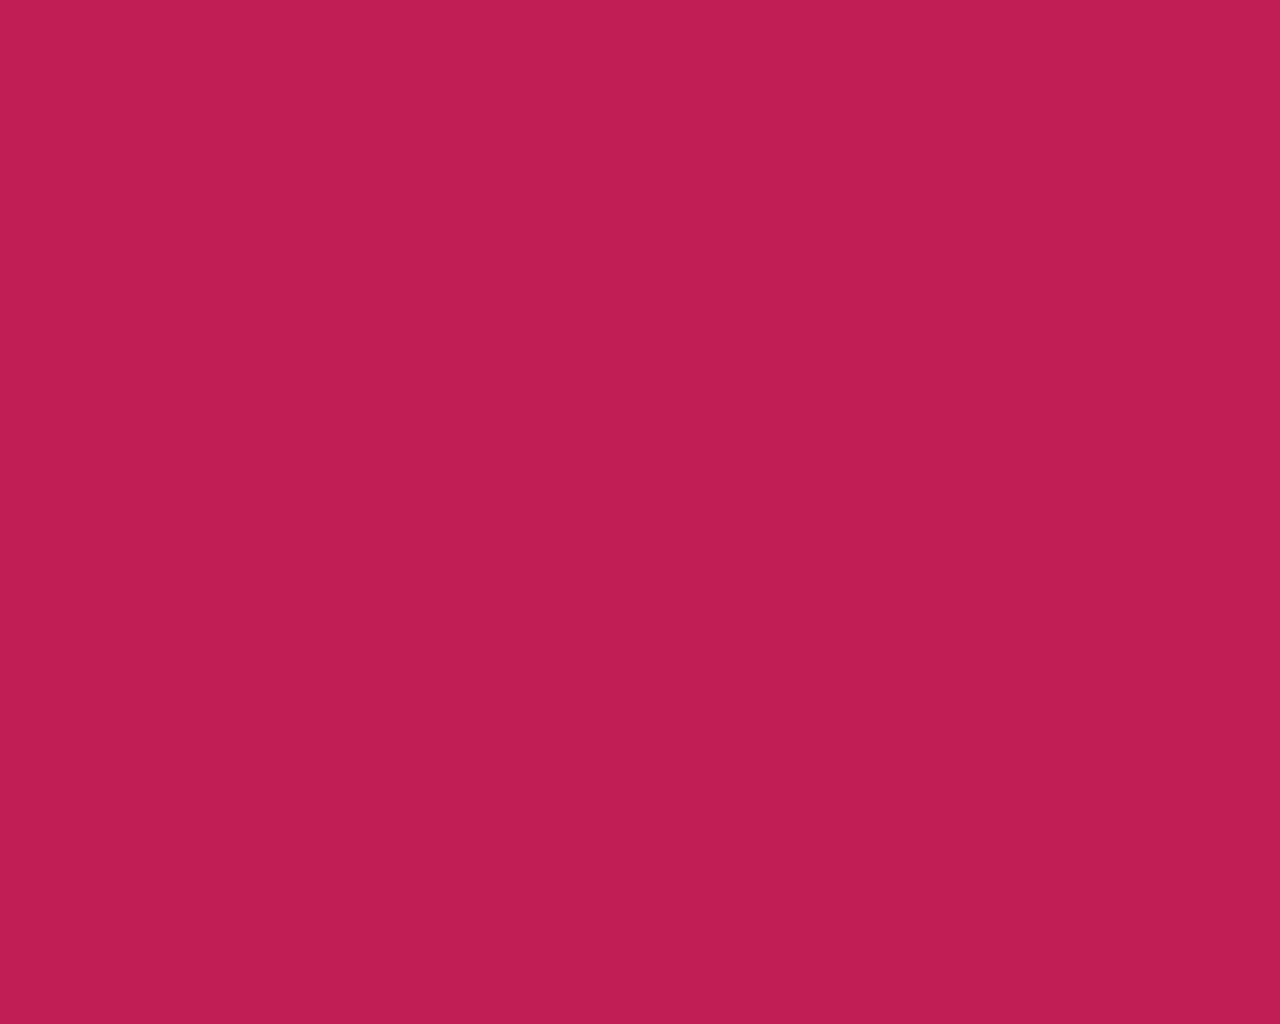 1280x1024 Rose Red Solid Color Background